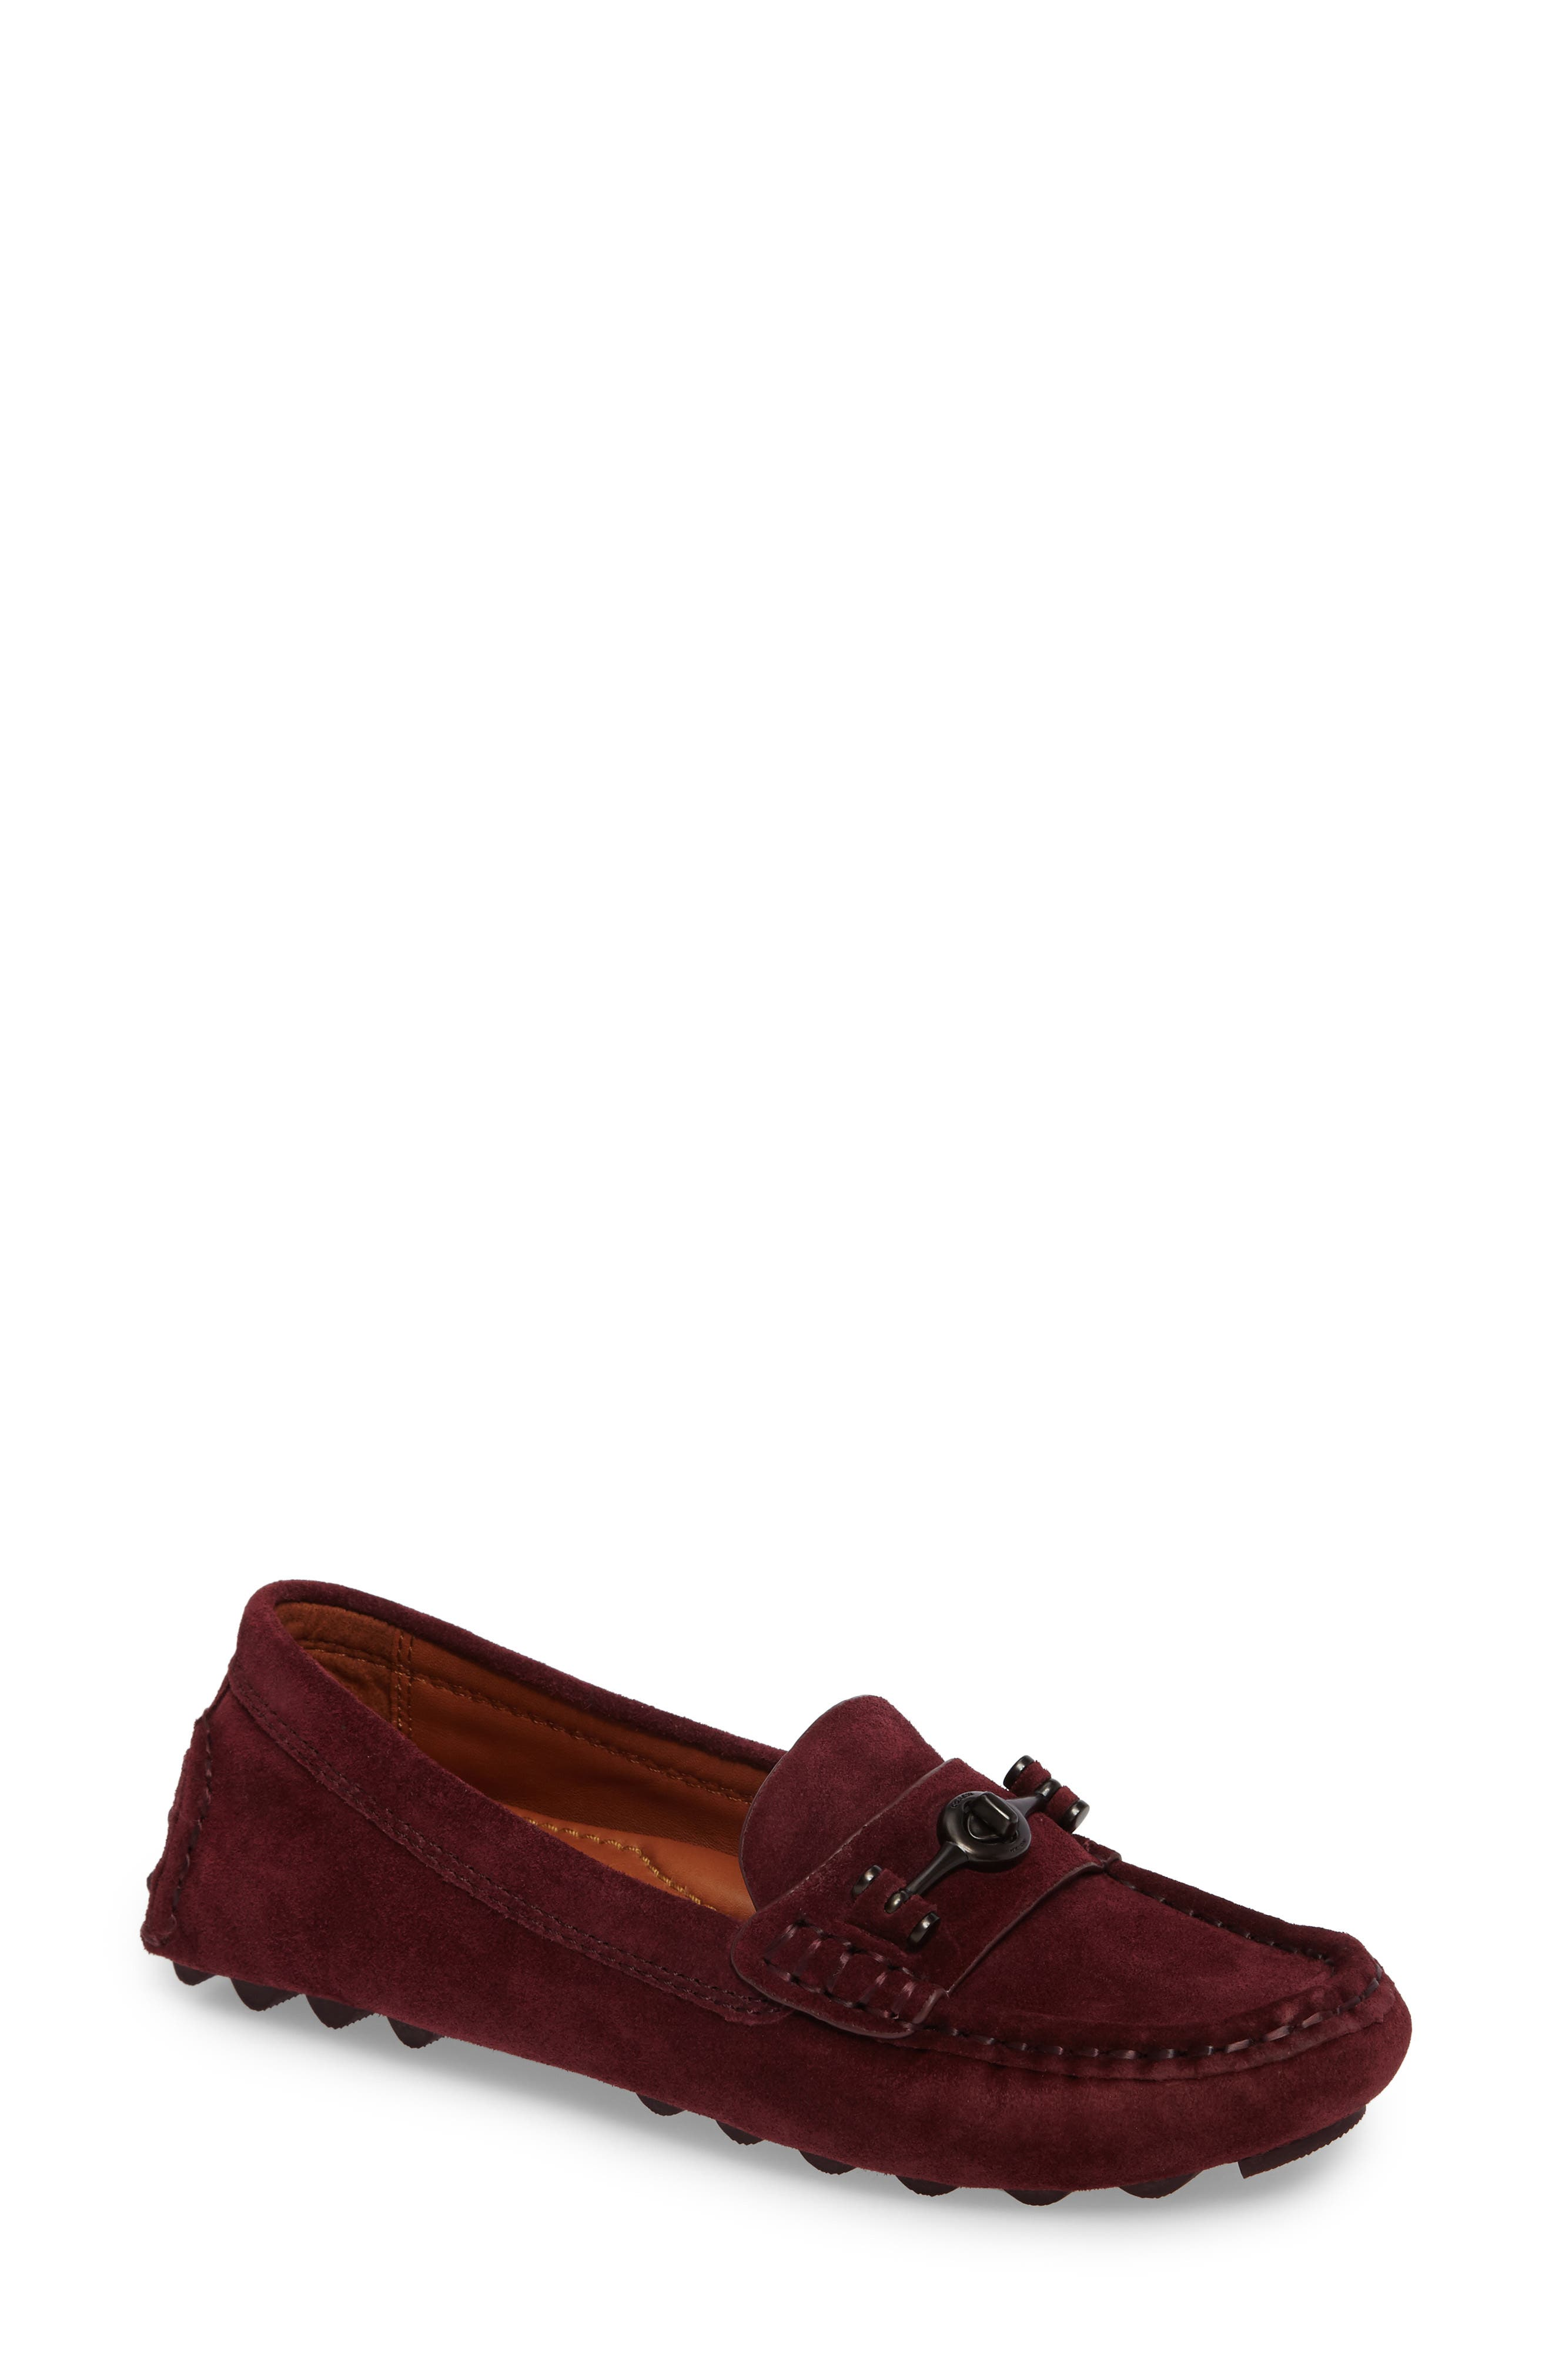 Alternate Image 1 Selected - Coach Crosby Driving Loafer (Women)